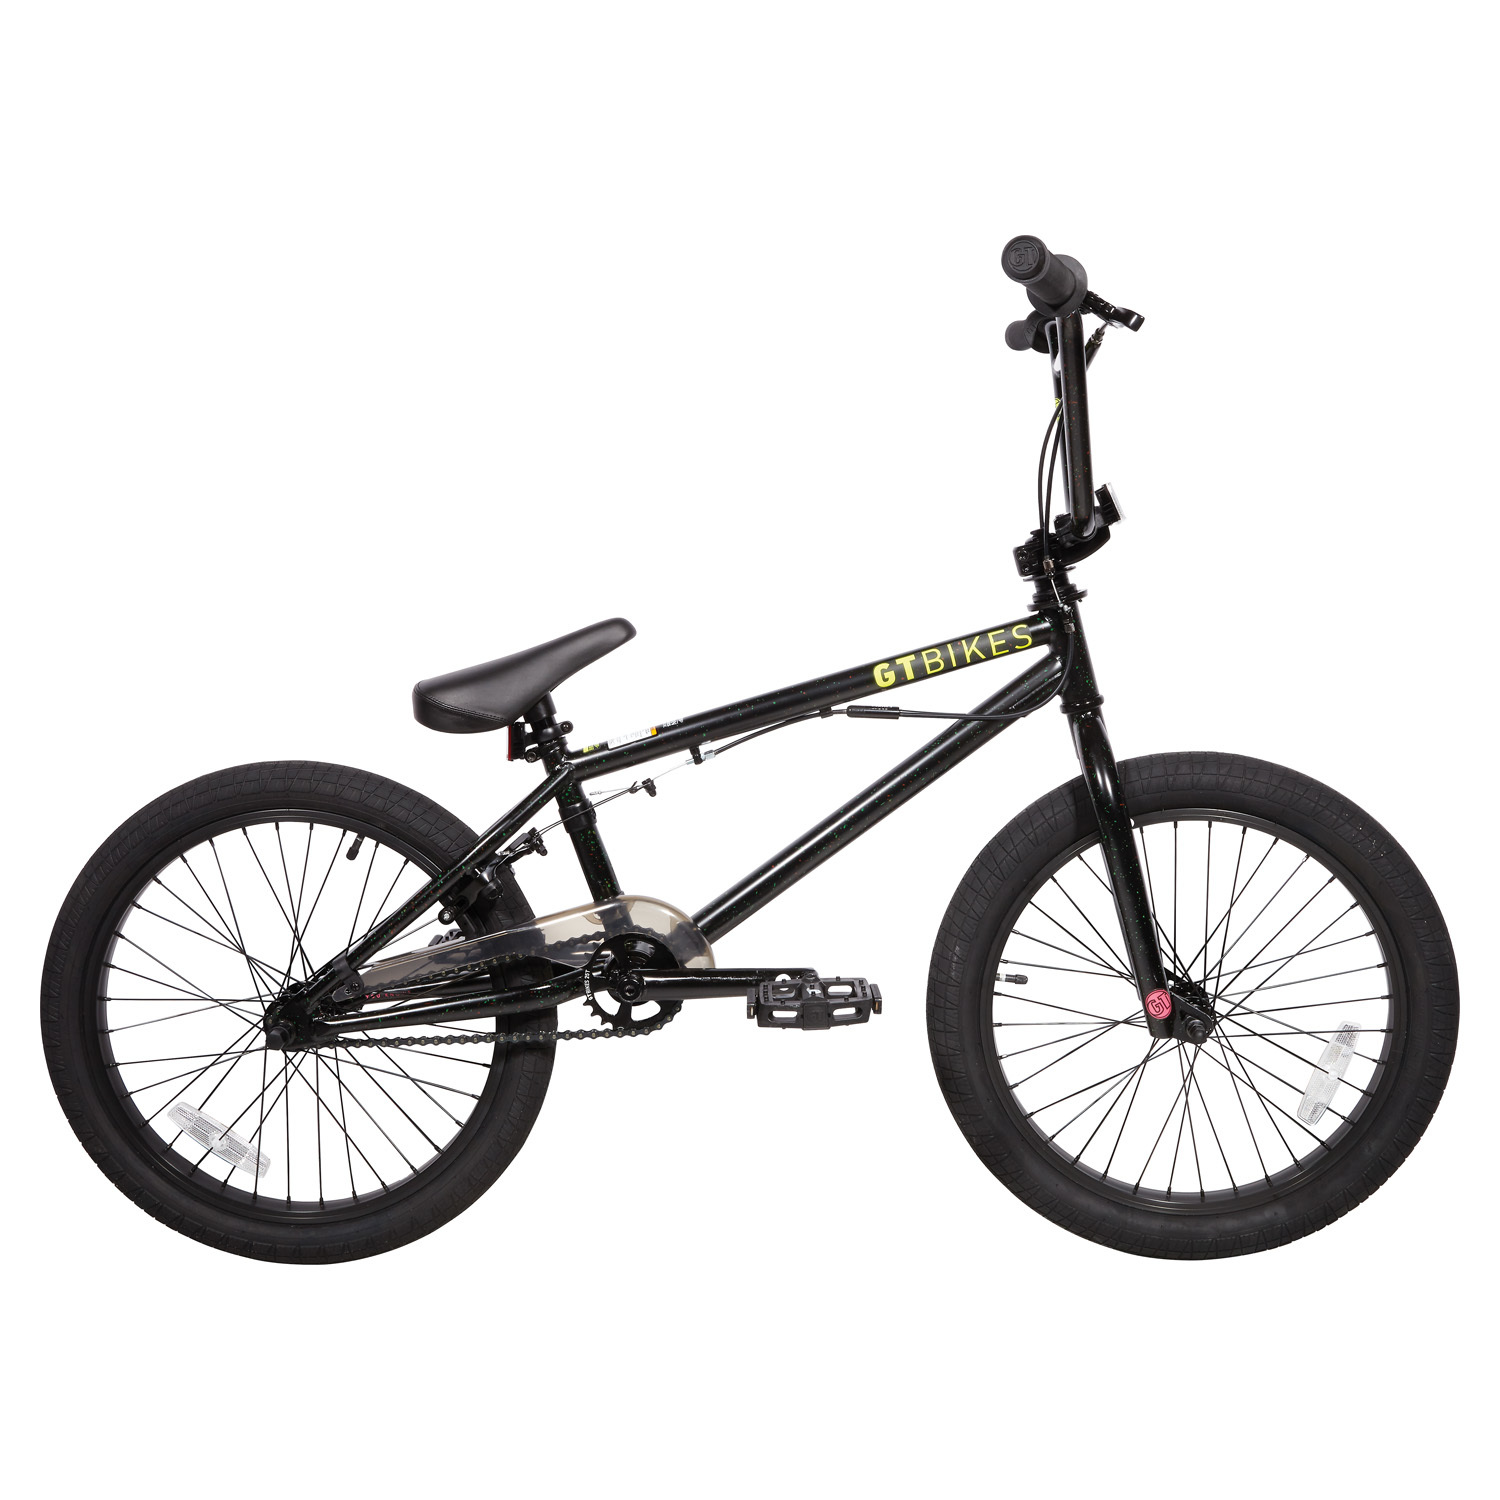 bmx bike gt slammer verip for. Black Bedroom Furniture Sets. Home Design Ideas